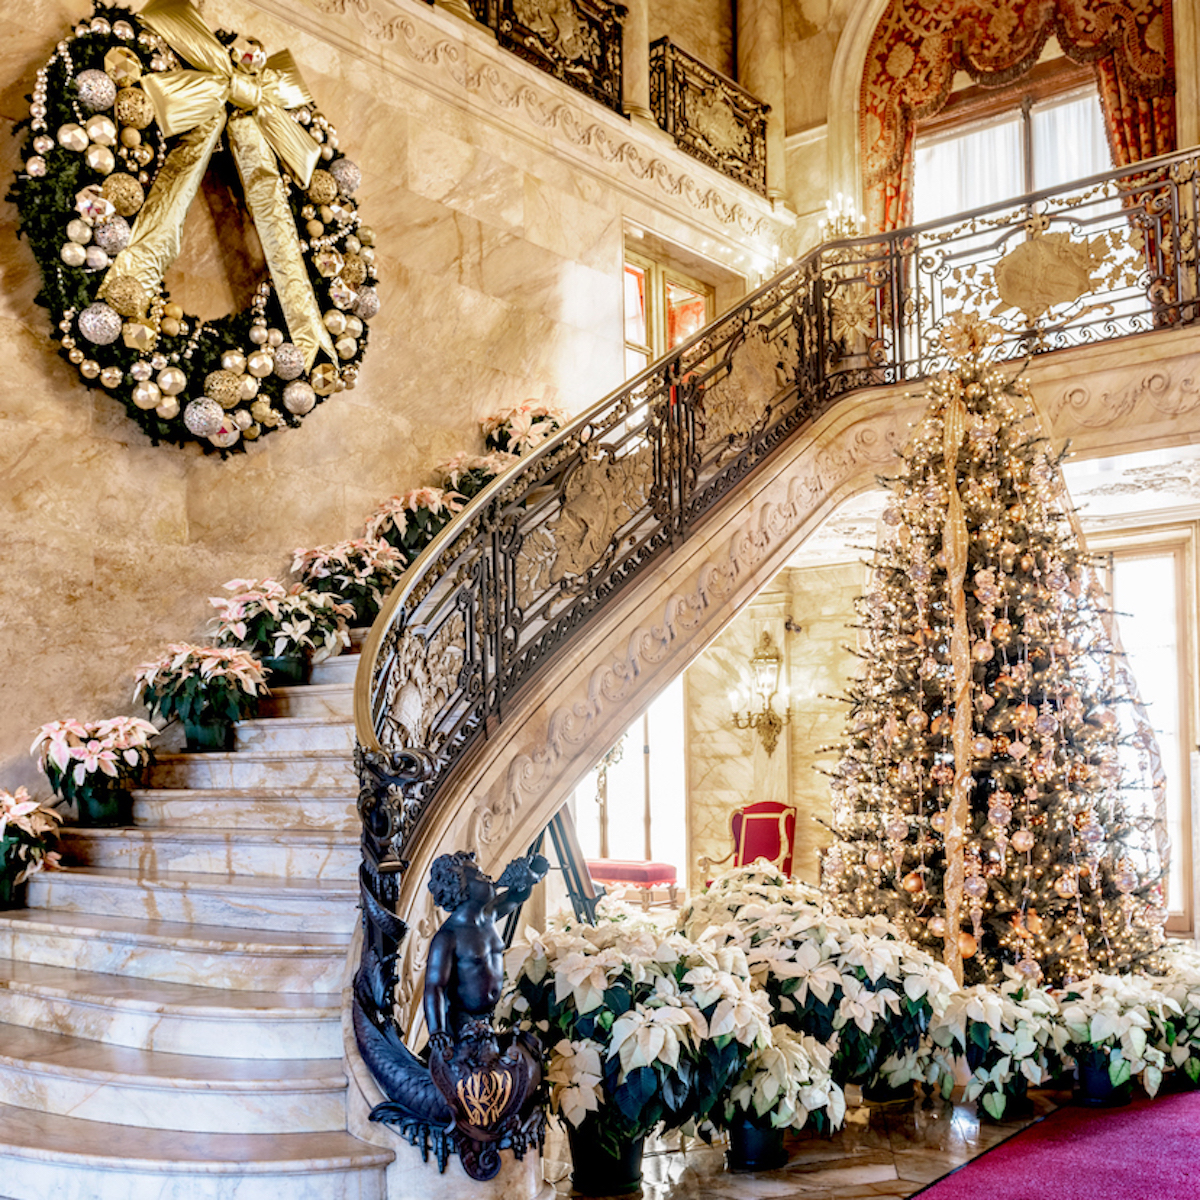 A grand staircase at Marble House